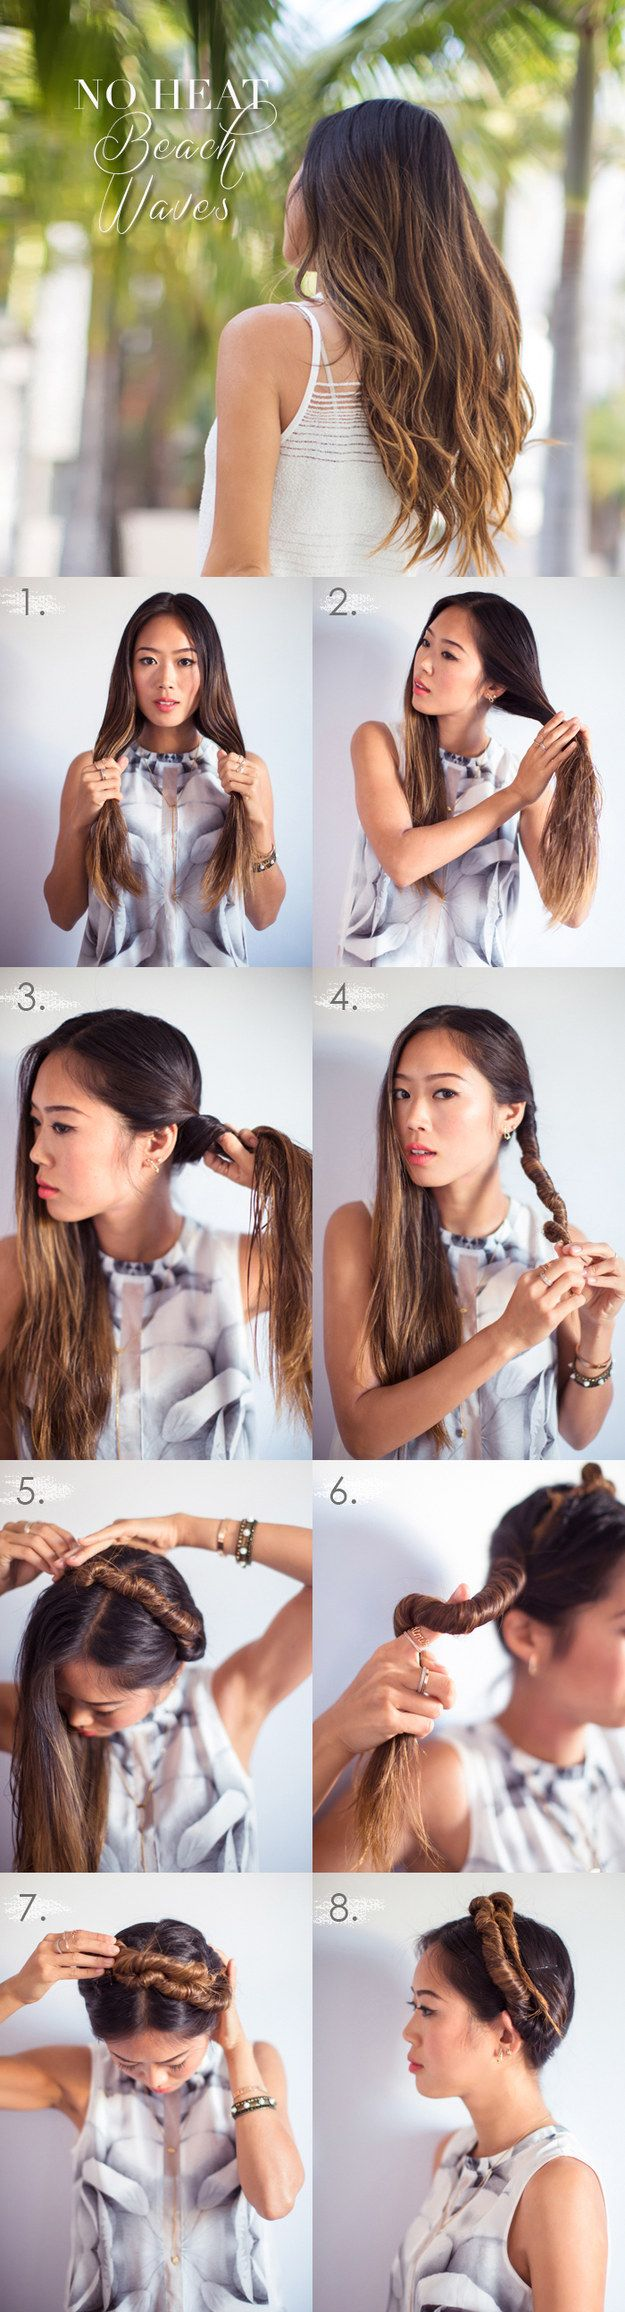 A similar idea to the mermaid braids, this twist tutorial looks adorable up, and gives you beachy waves when down. | Genius Hairstyles That Will Last Two Whole Days